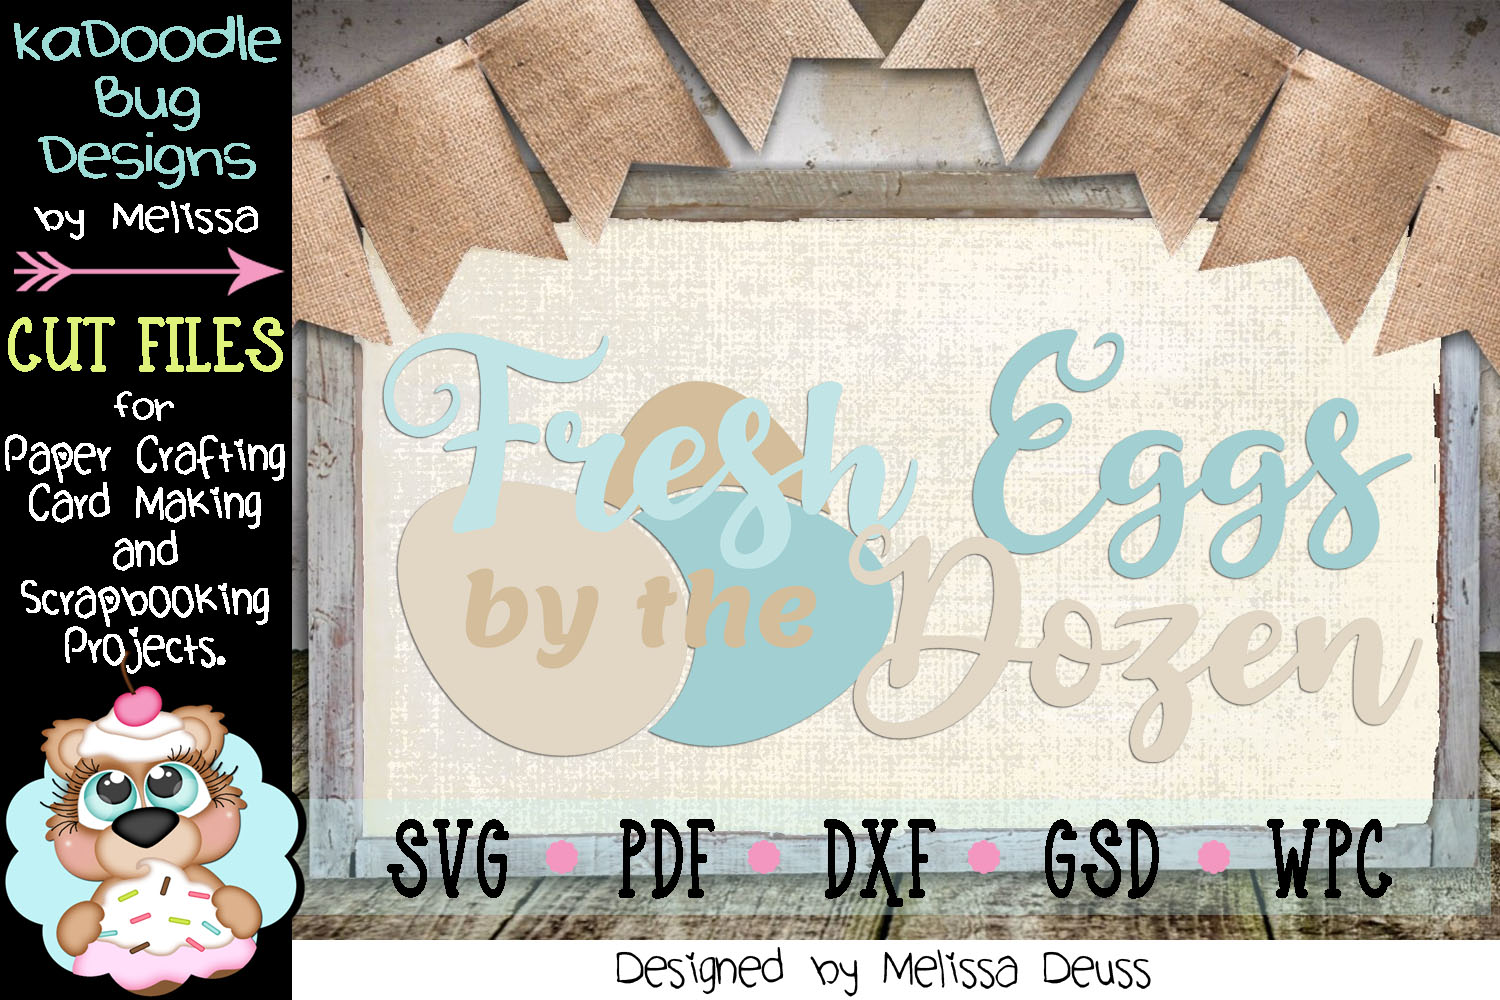 Fresh Eggs by the Dozen Cut File - SVG PDF DXF GSD WPC example image 1